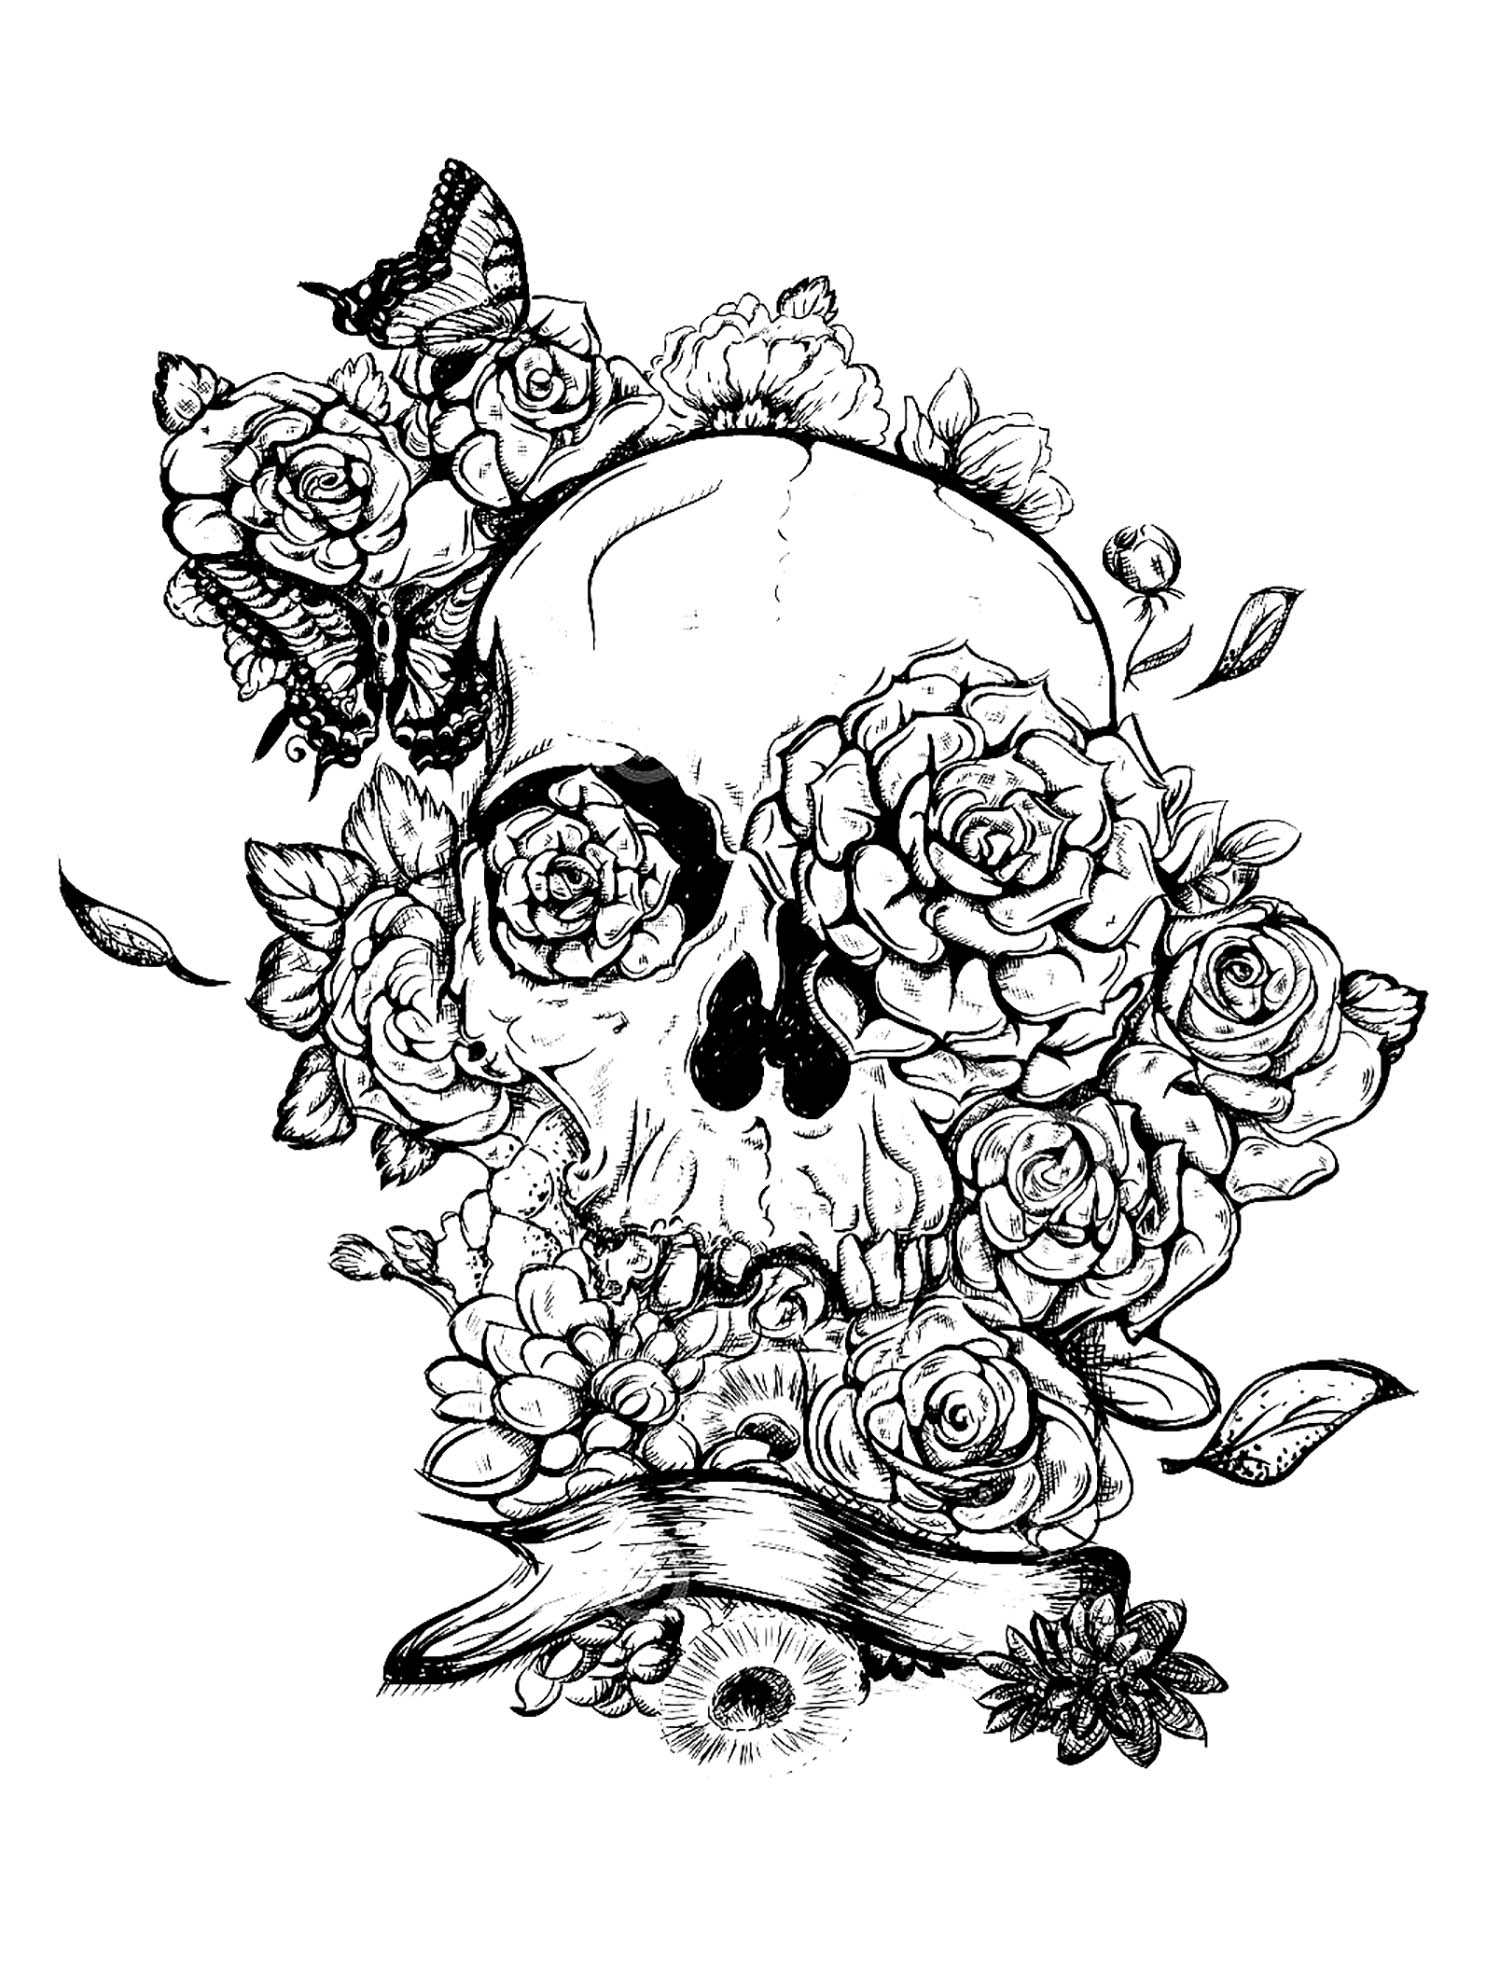 Adult Coloring Pages Skull And Roses Tattoo Tattoos Adult Coloring Pages